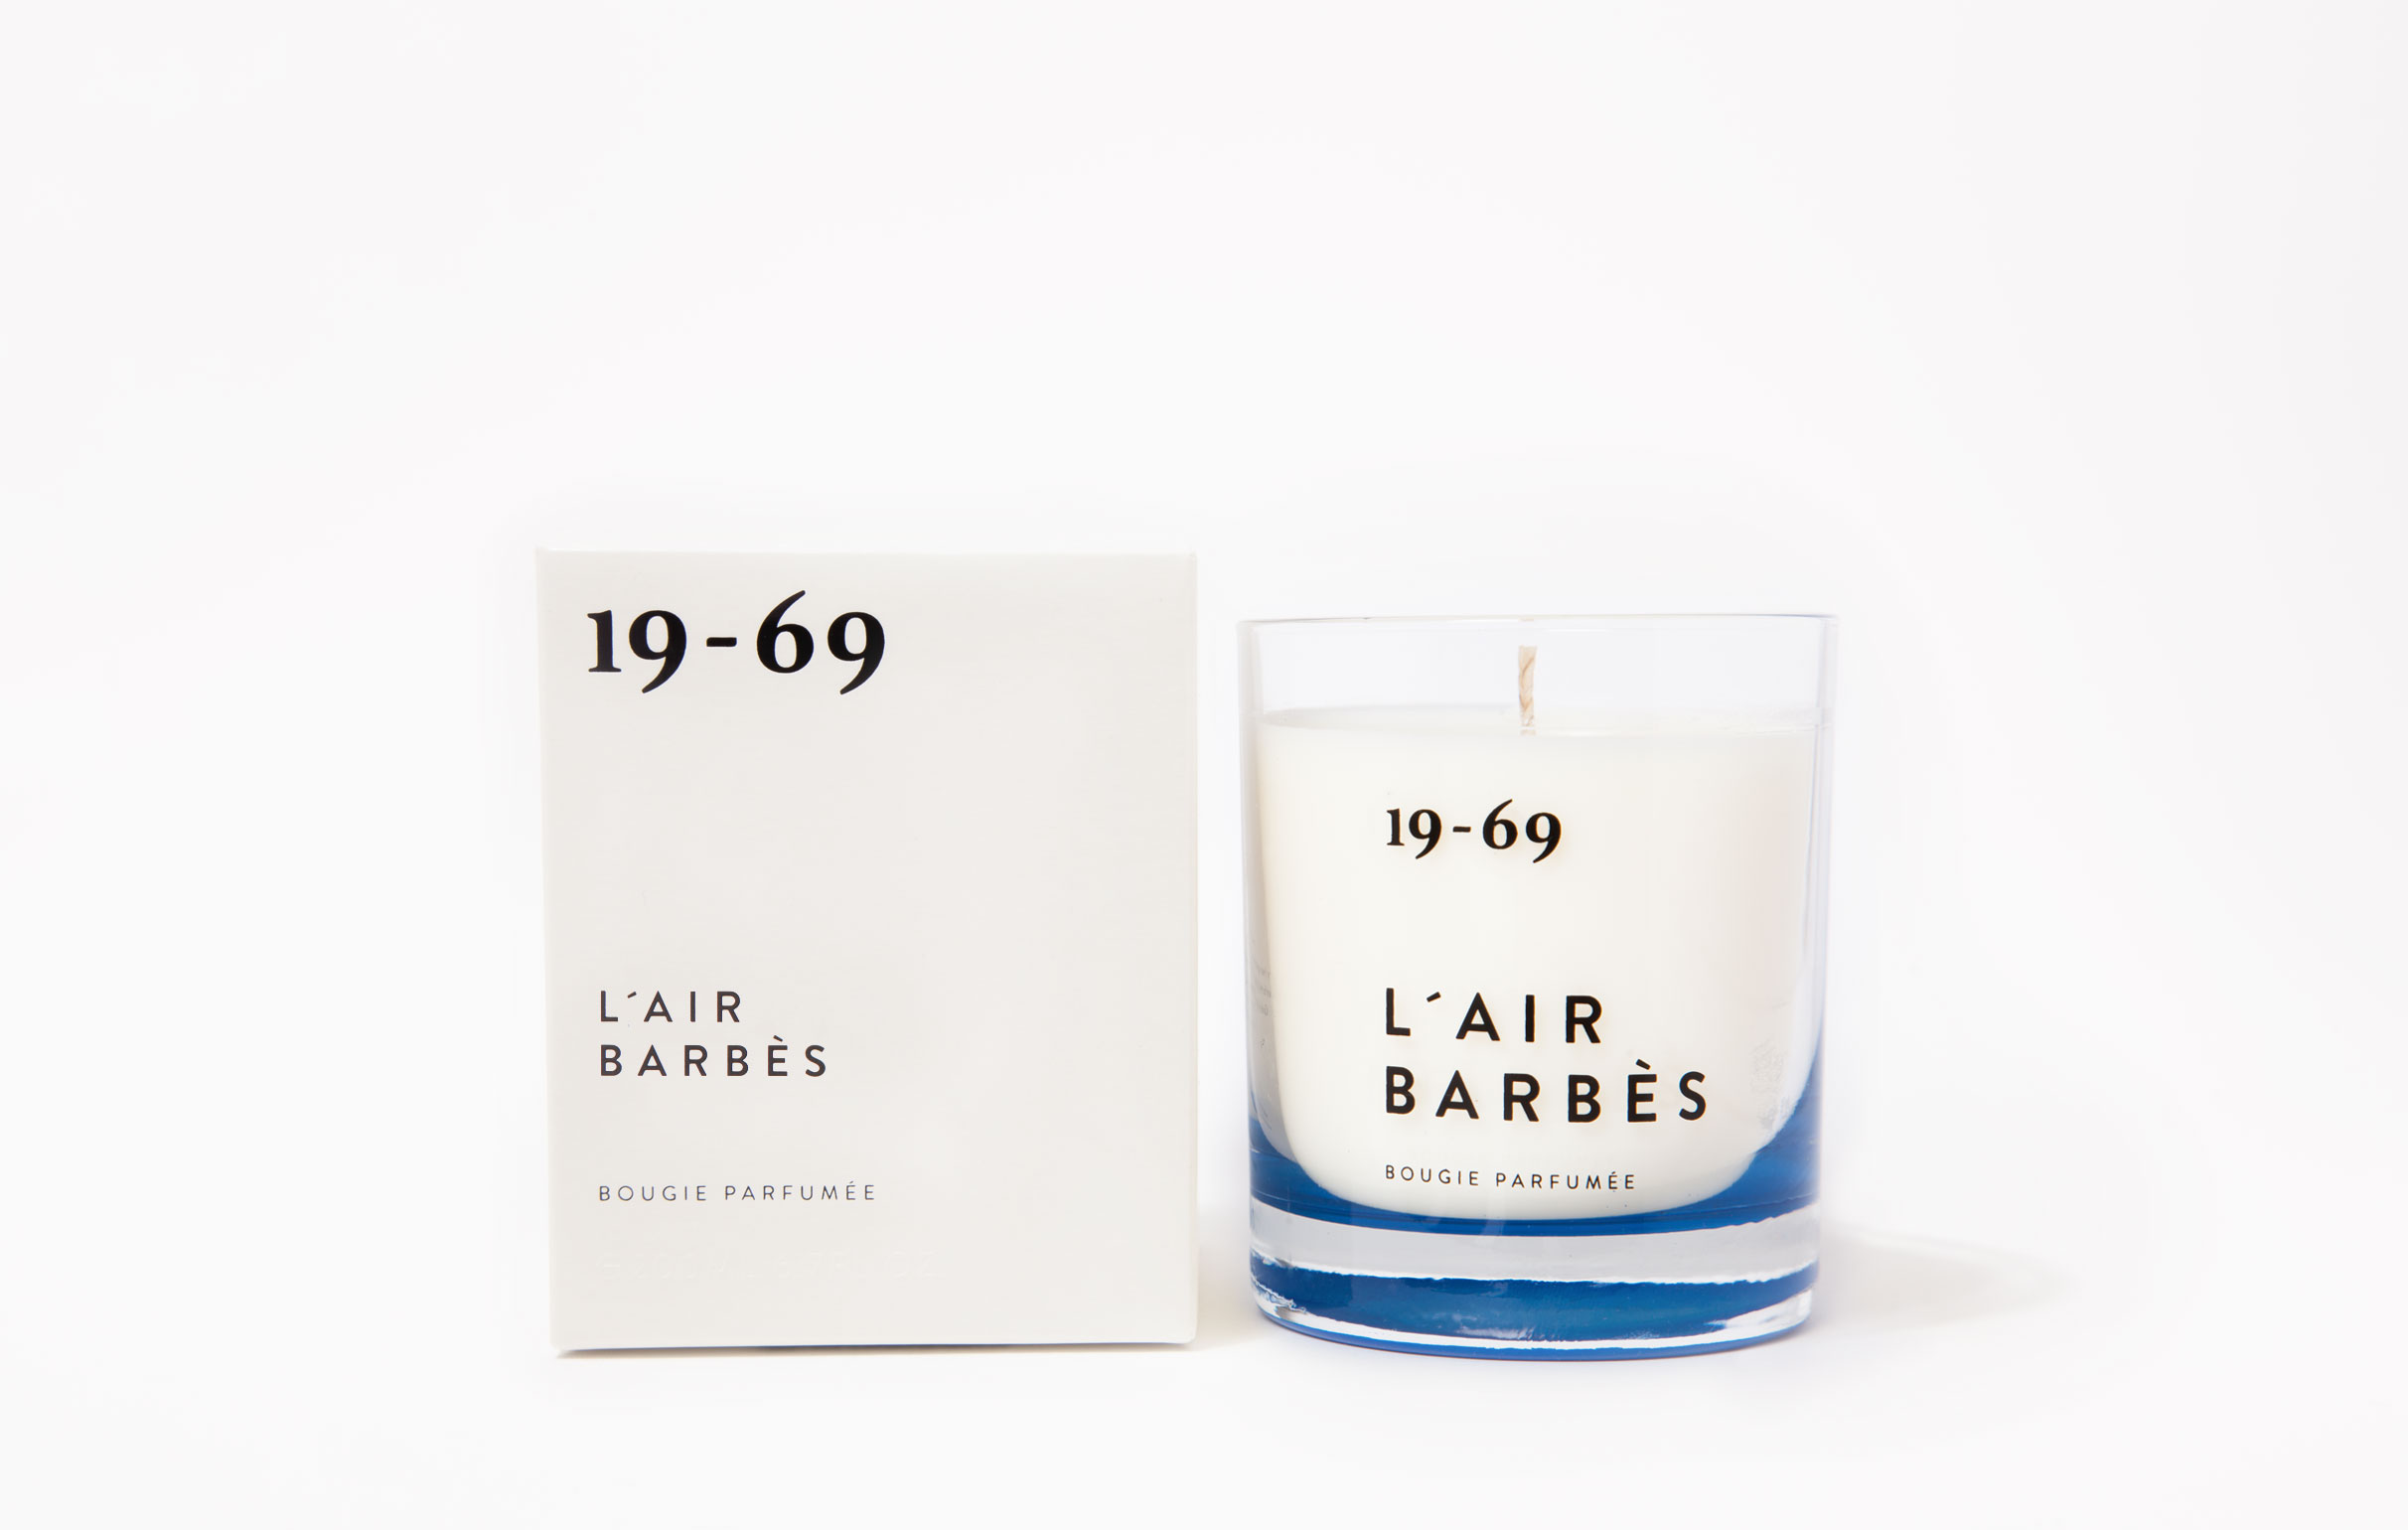 19-69 L´air Barbès Bougie Parfumée 200ml